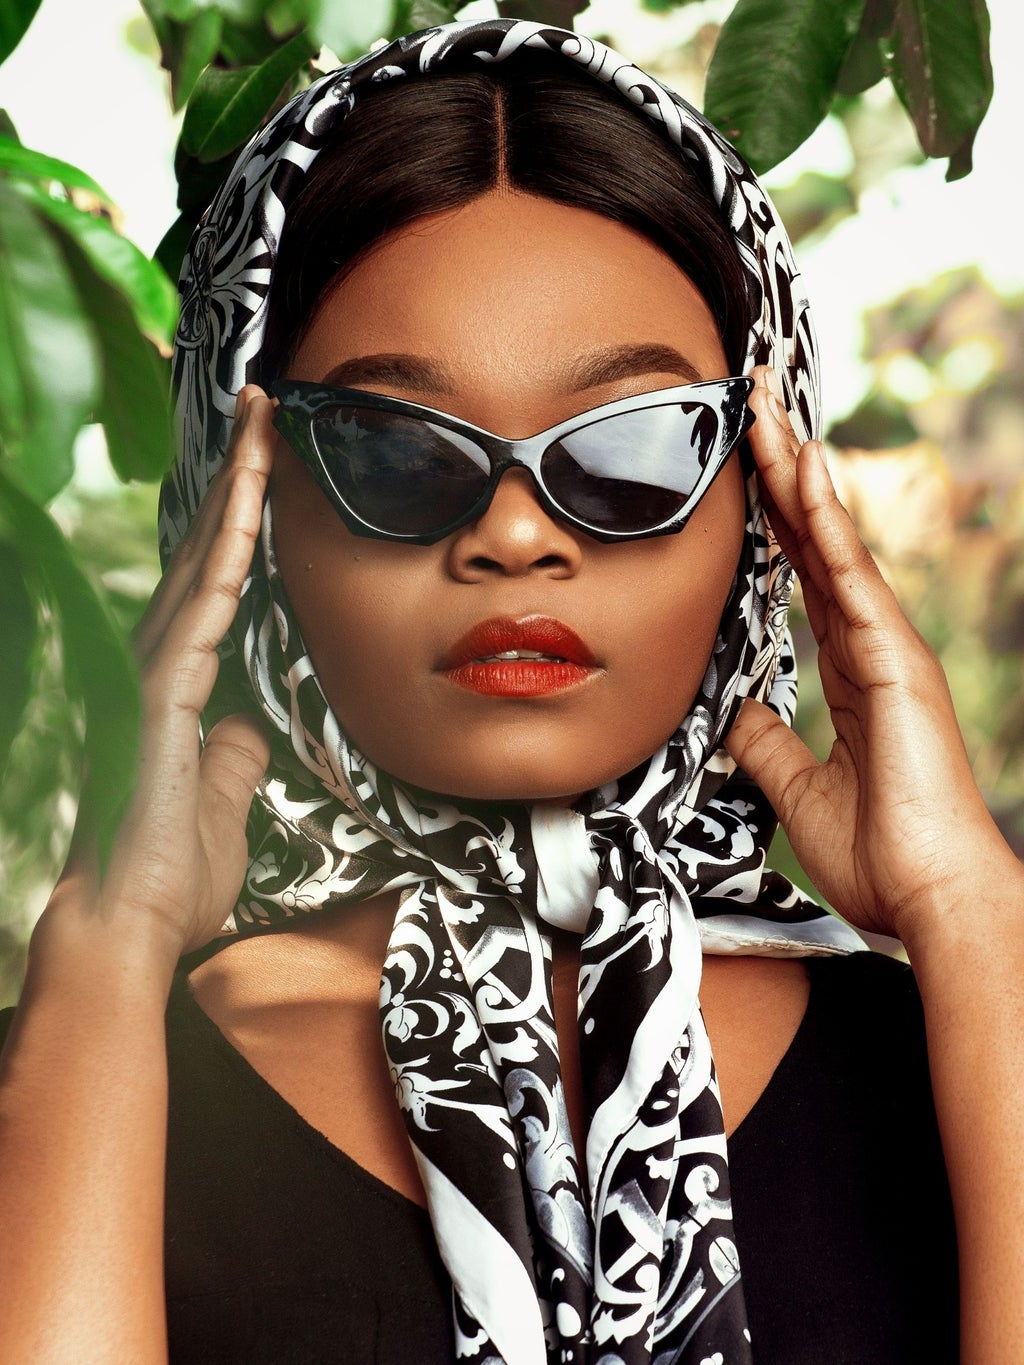 Woman with silk headscarf and sunglasses